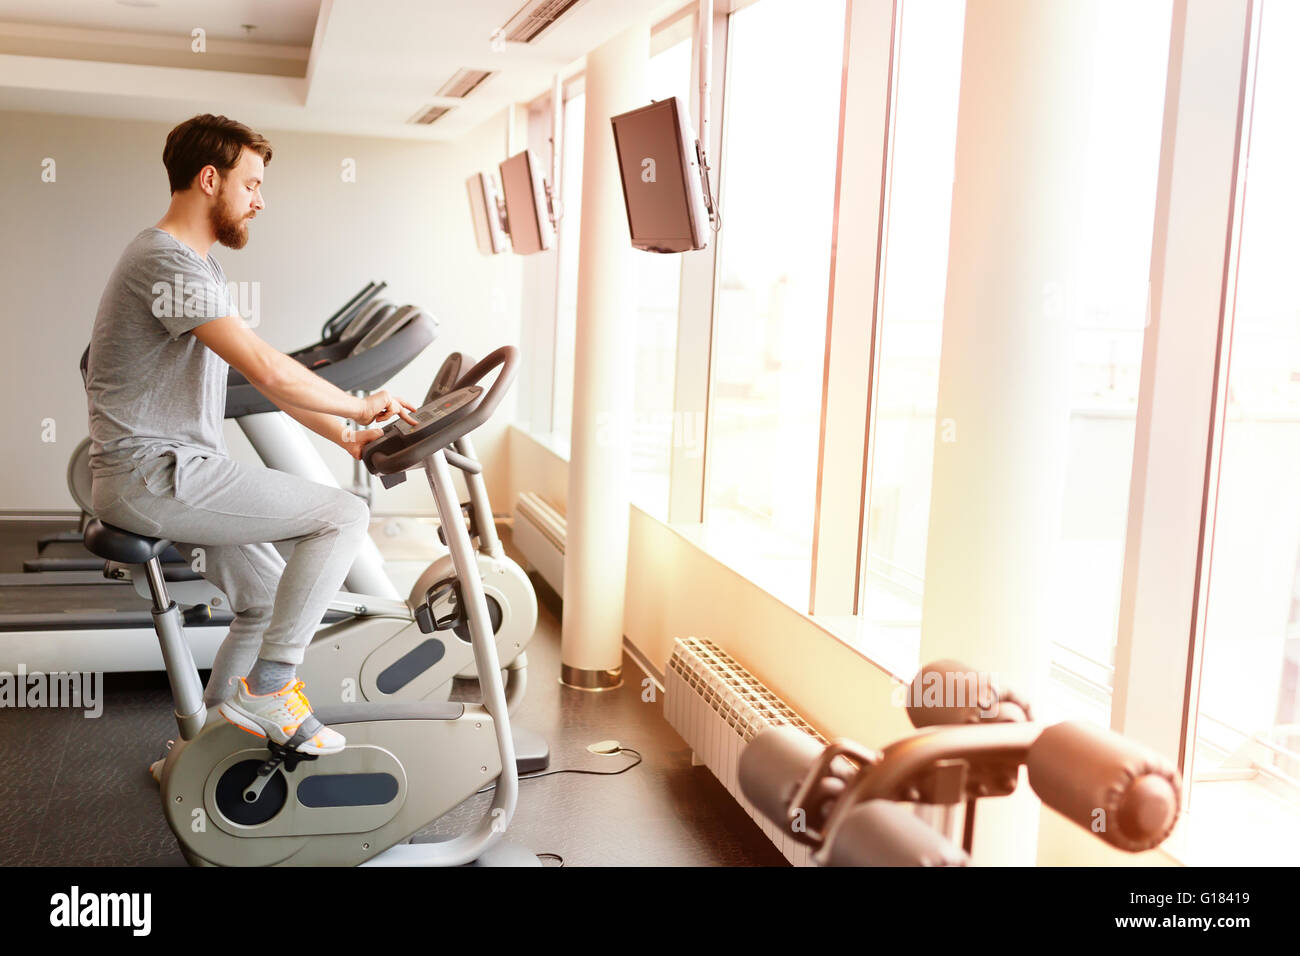 Sportive male exercising on bicycle in gym - Stock Image